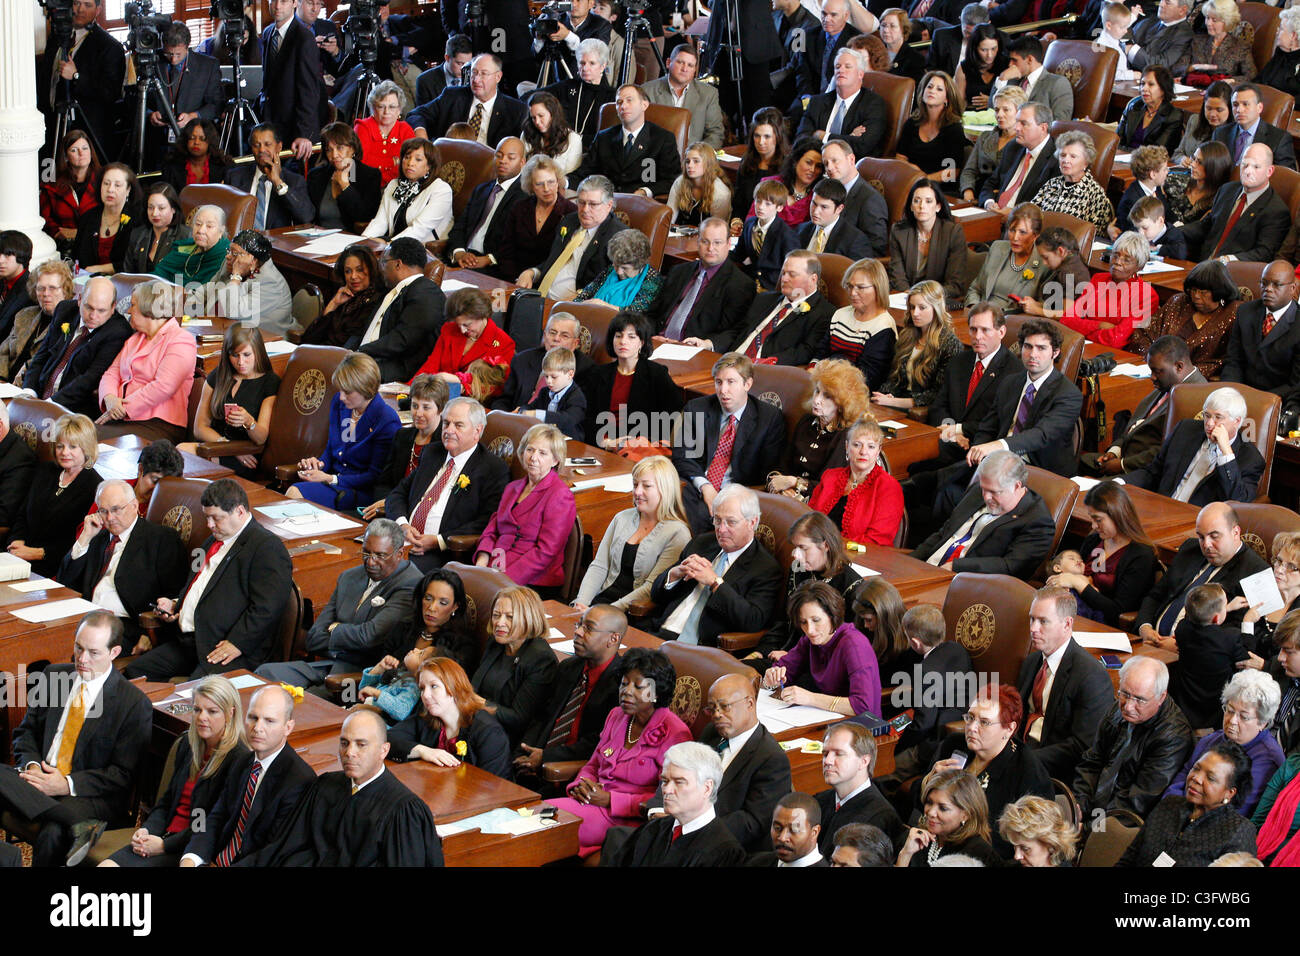 Overview of attendees which included elected officials and family on the first day of the 82nd Texas Legislature - Stock Image